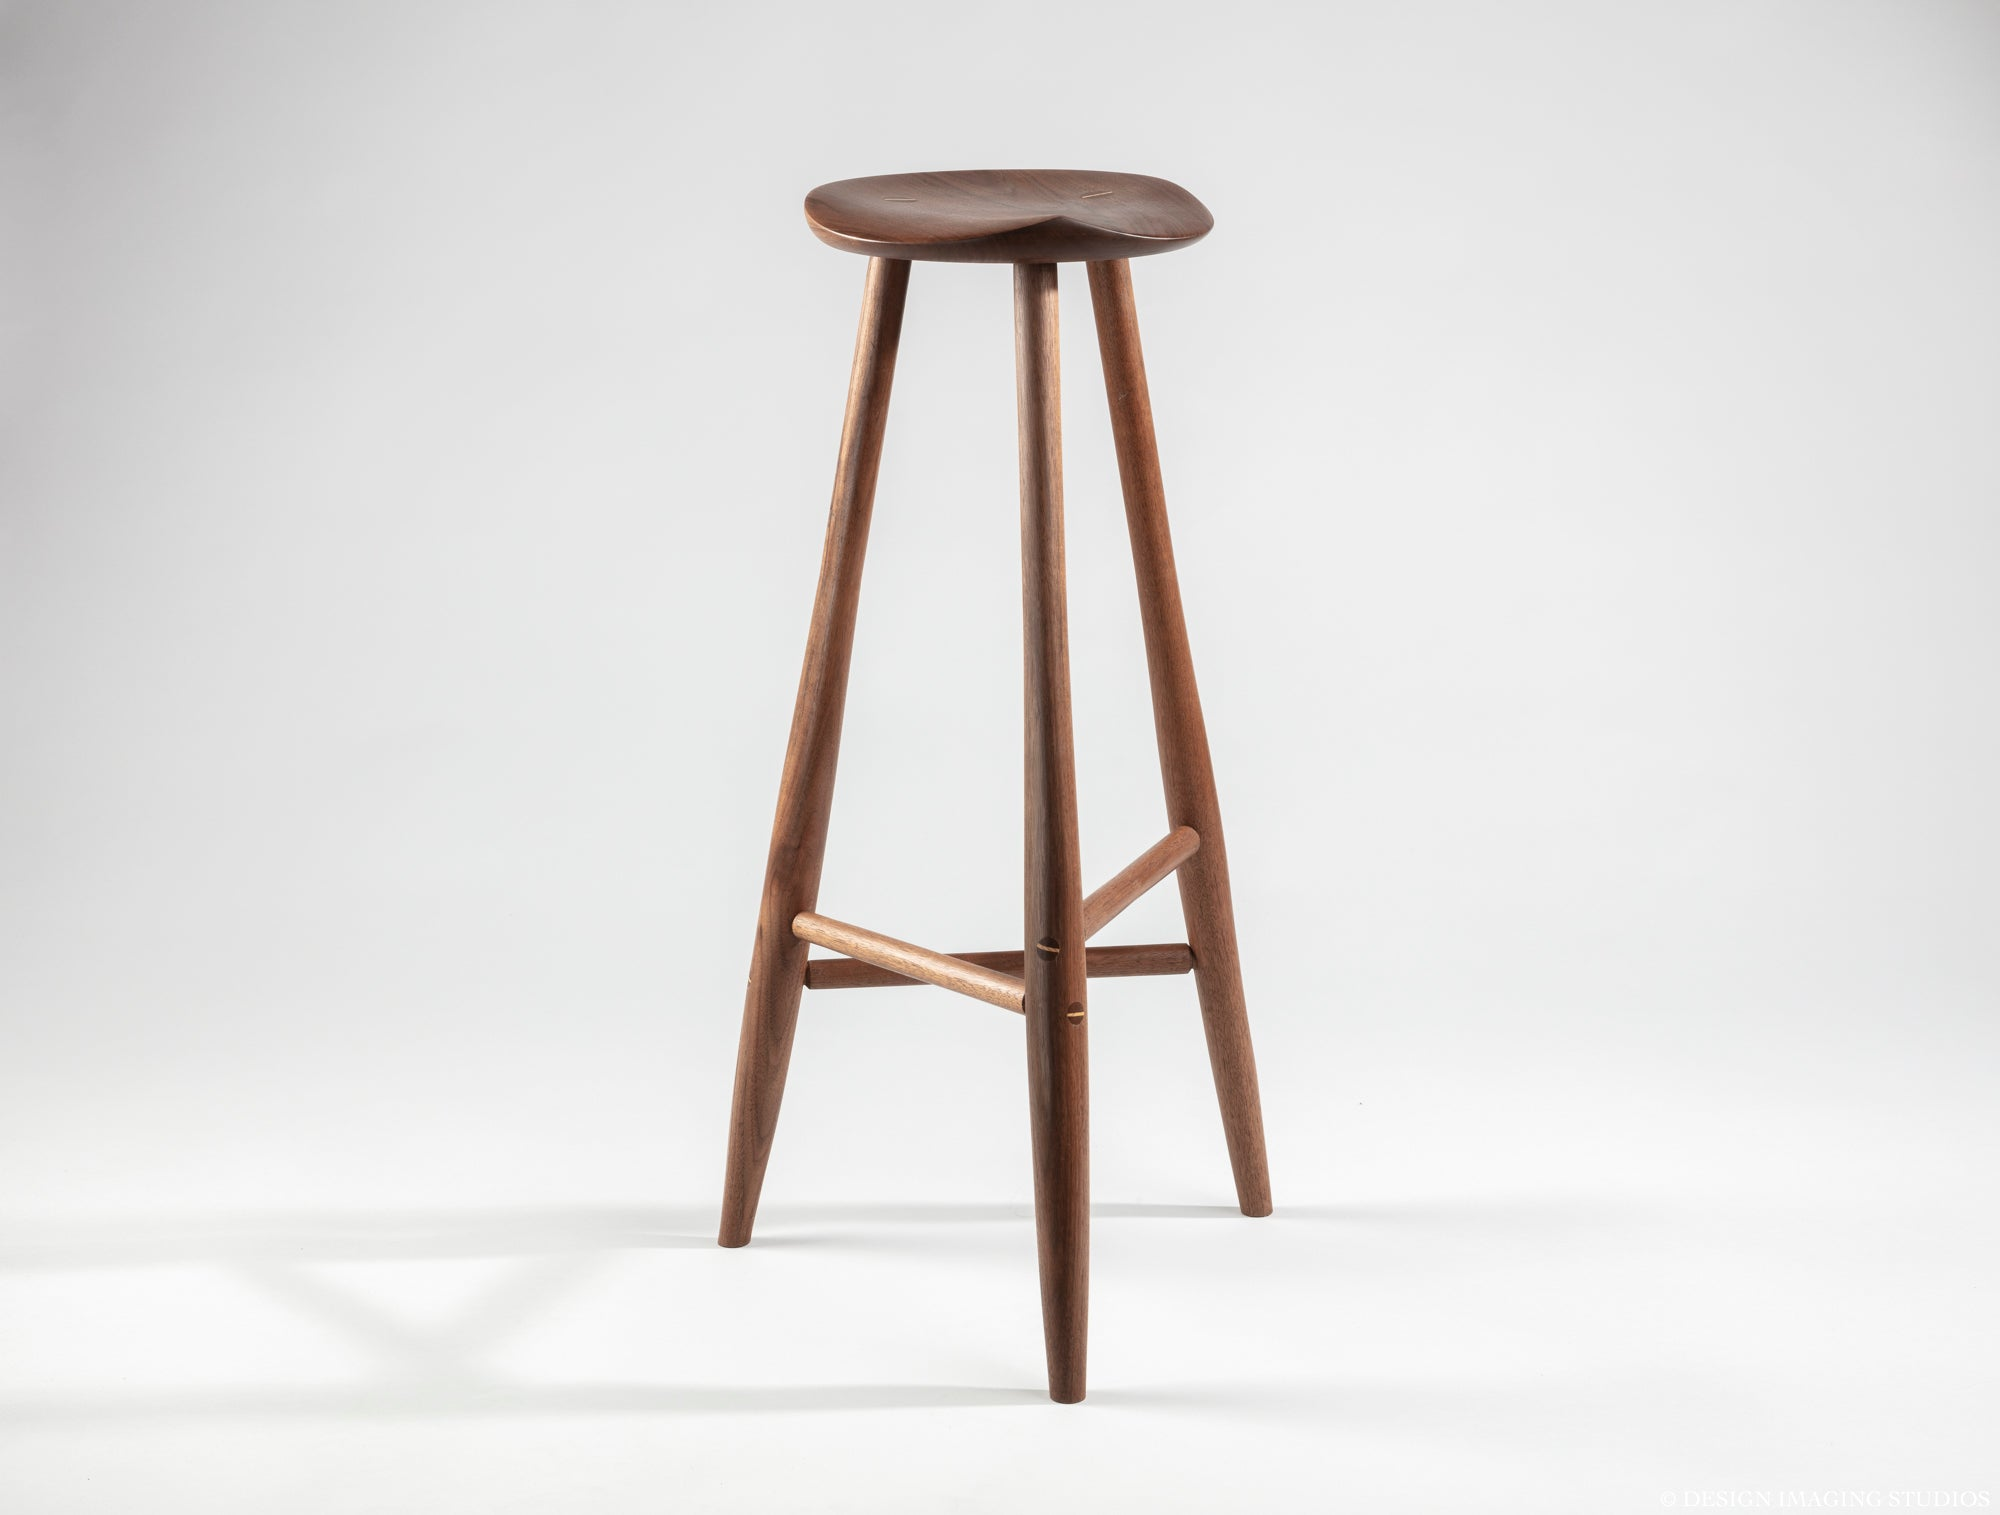 No. 7 Esherick Stool